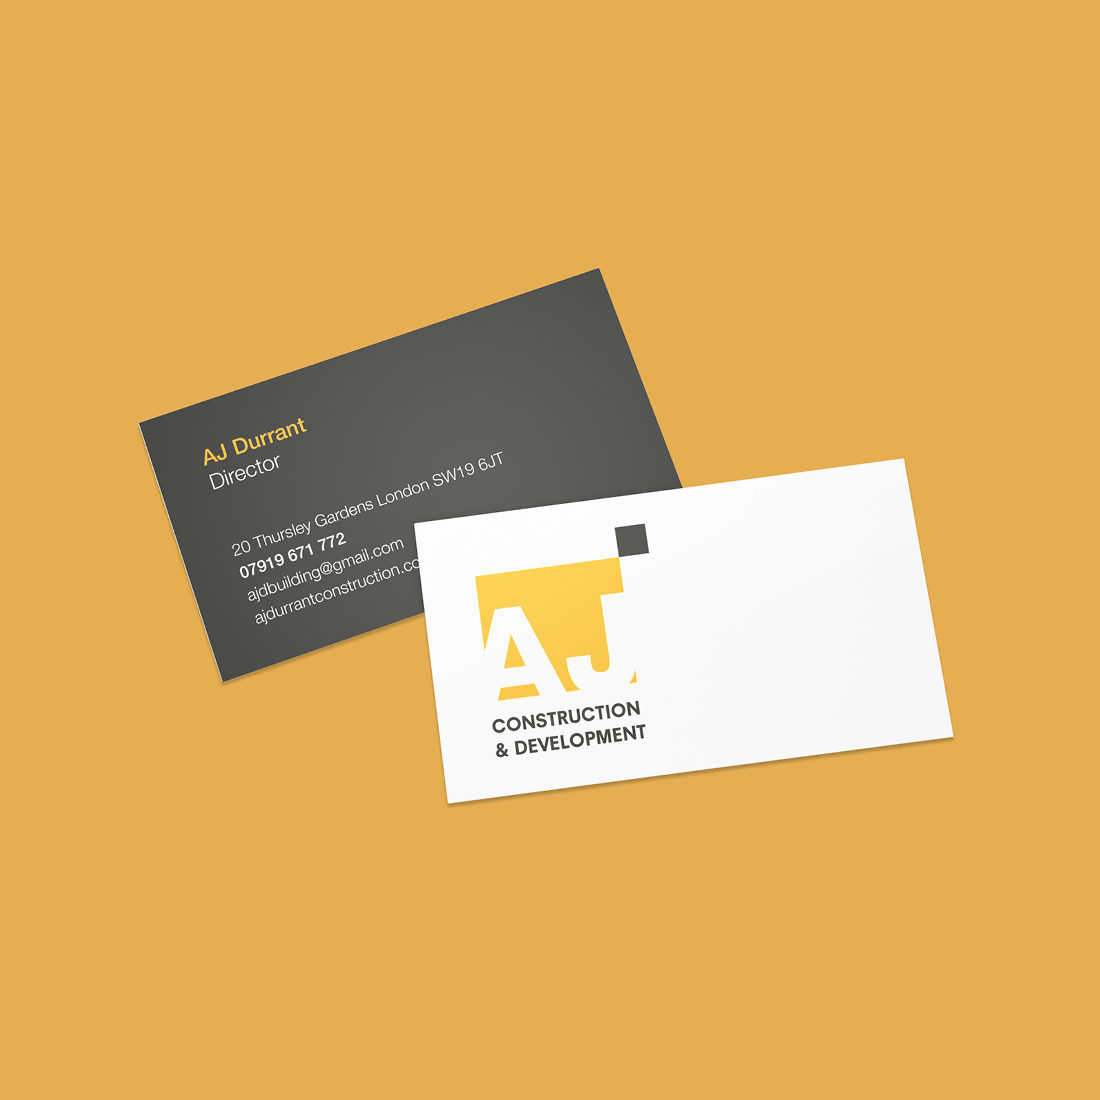 AJ Durrant Business Cards